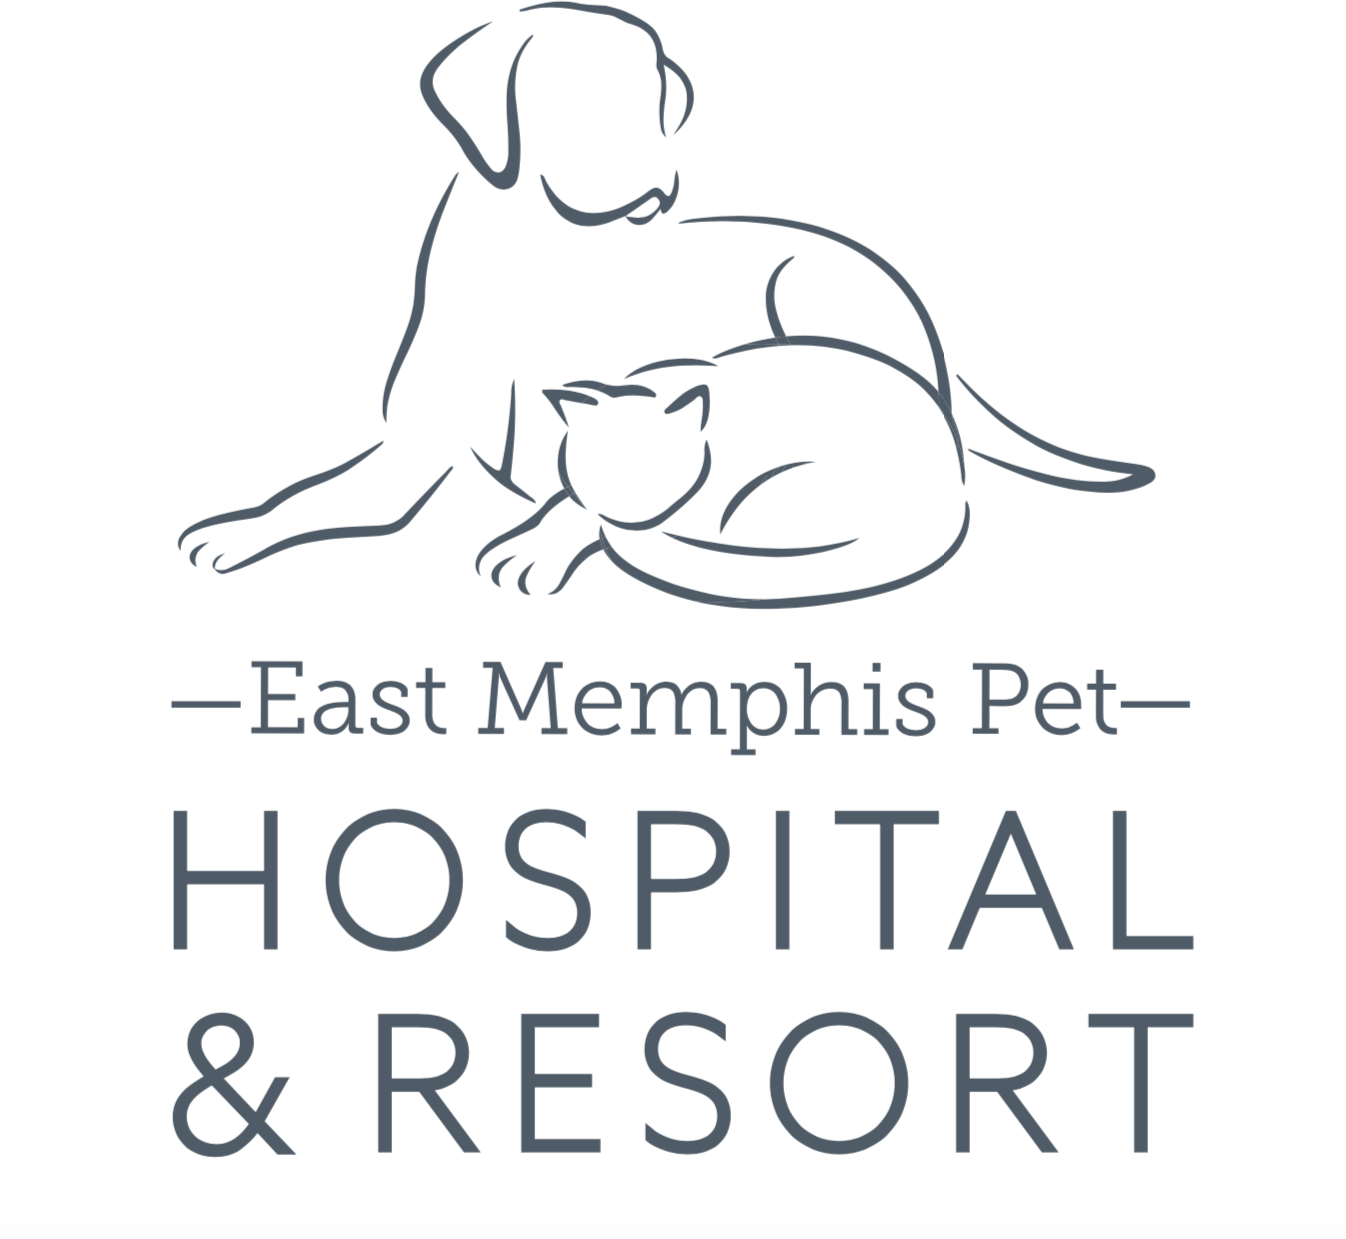 East Memphis Pet Hospital